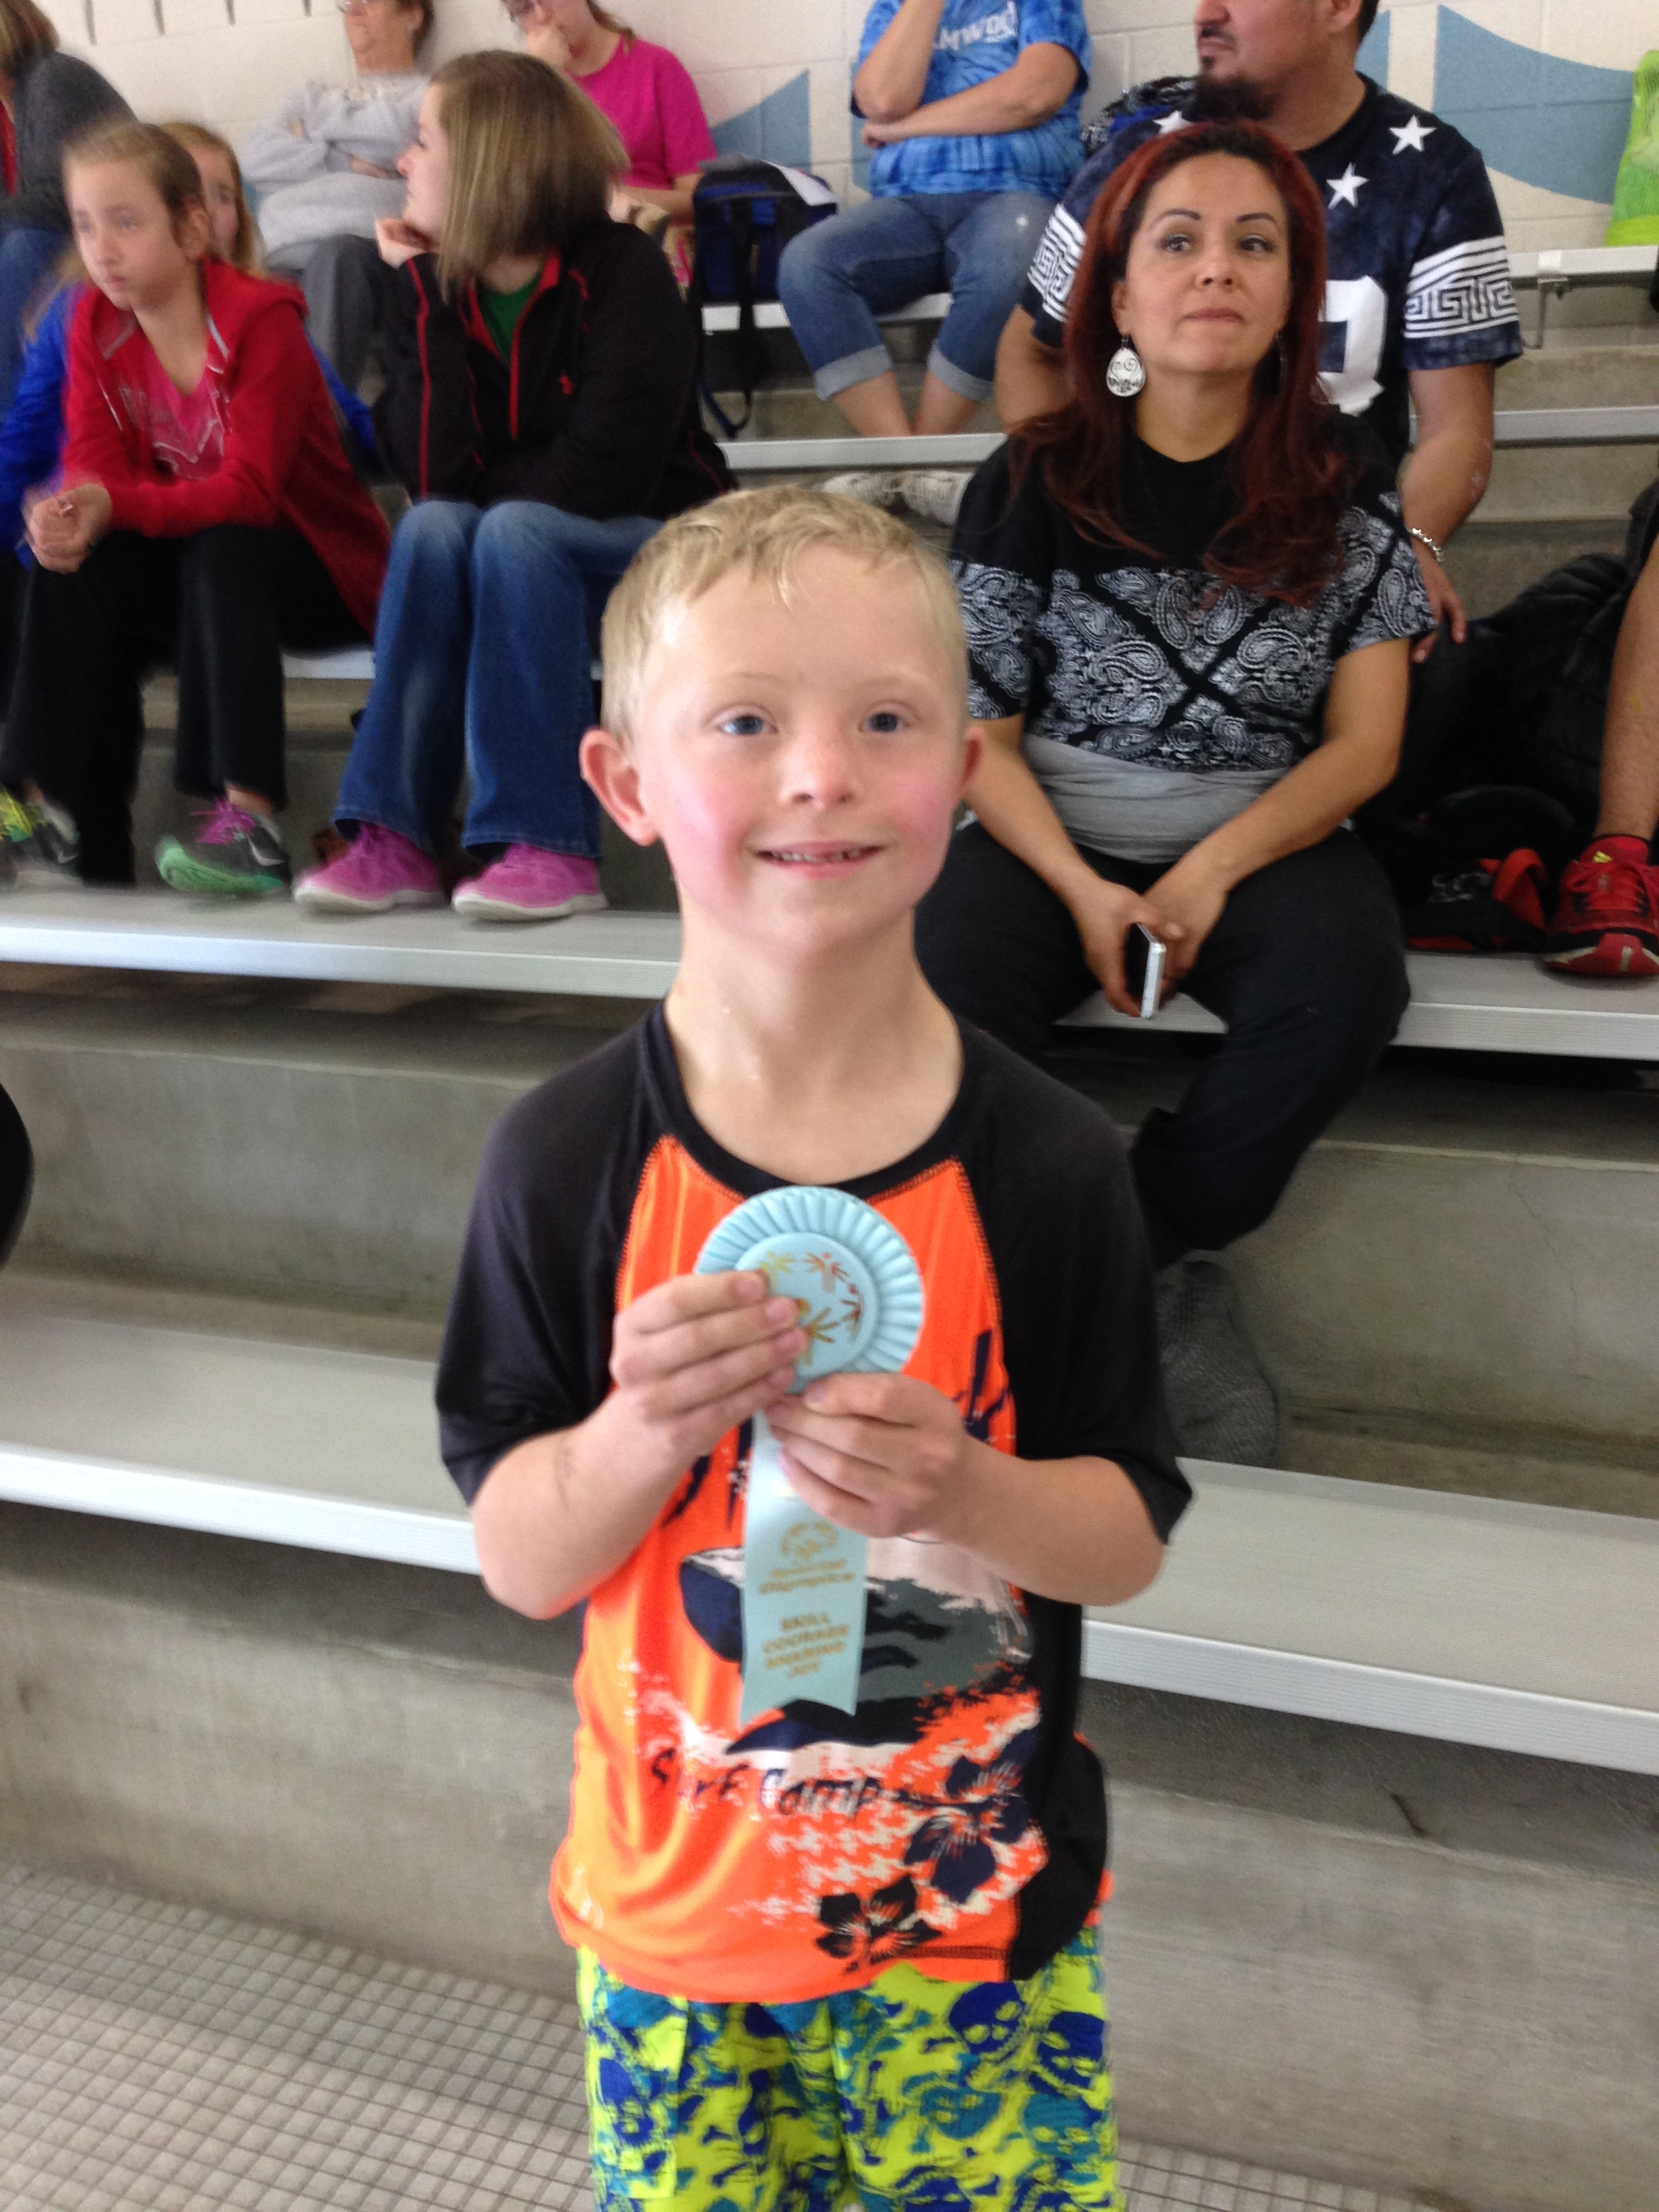 """Aiden's 1st meet he competed in. He found the courage to jump in and swim in front of many people! He was very """"Brave in his Attempt""""."""